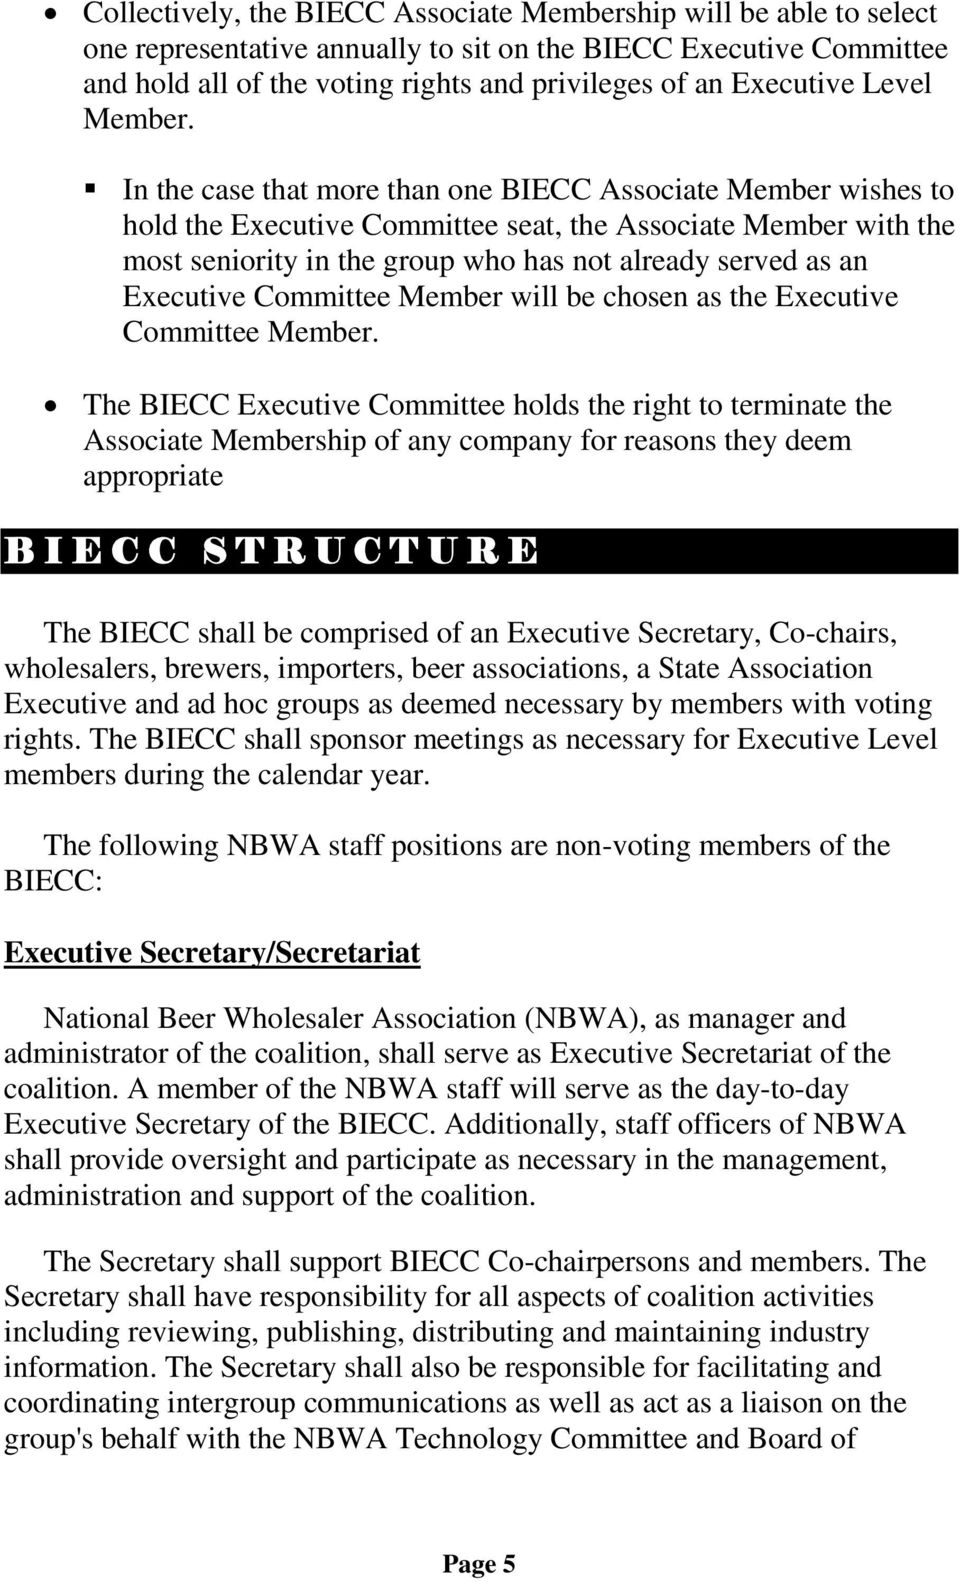 In the case that more than one BIECC Associate Member wishes to hold the Executive Committee seat, the Associate Member with the most seniority in the group who has not already served as an Executive